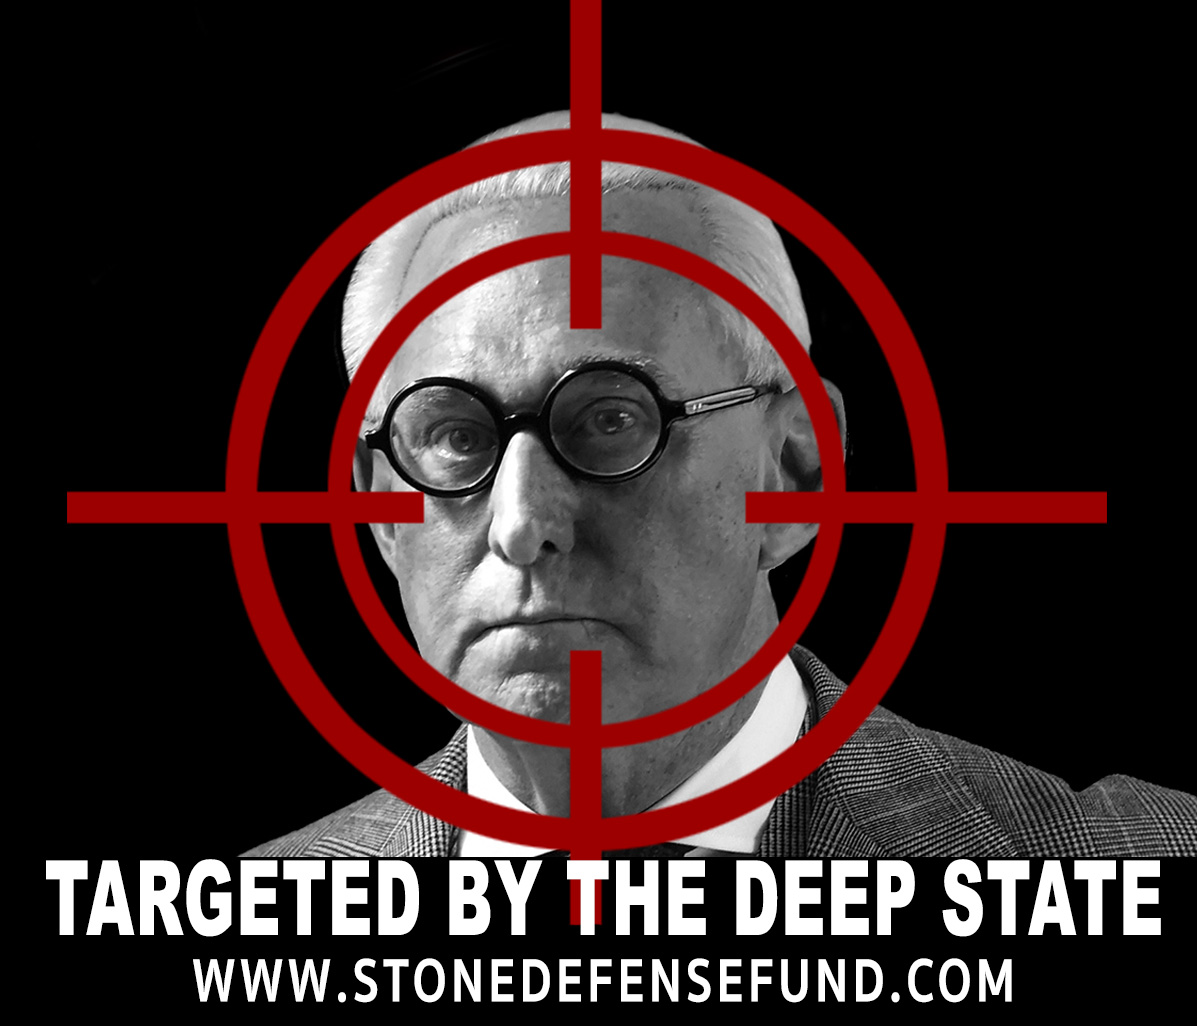 Bombshell: New texts support Roger Stone's claims regarding backchannel to Wikileaks even as Mueller still targeting him